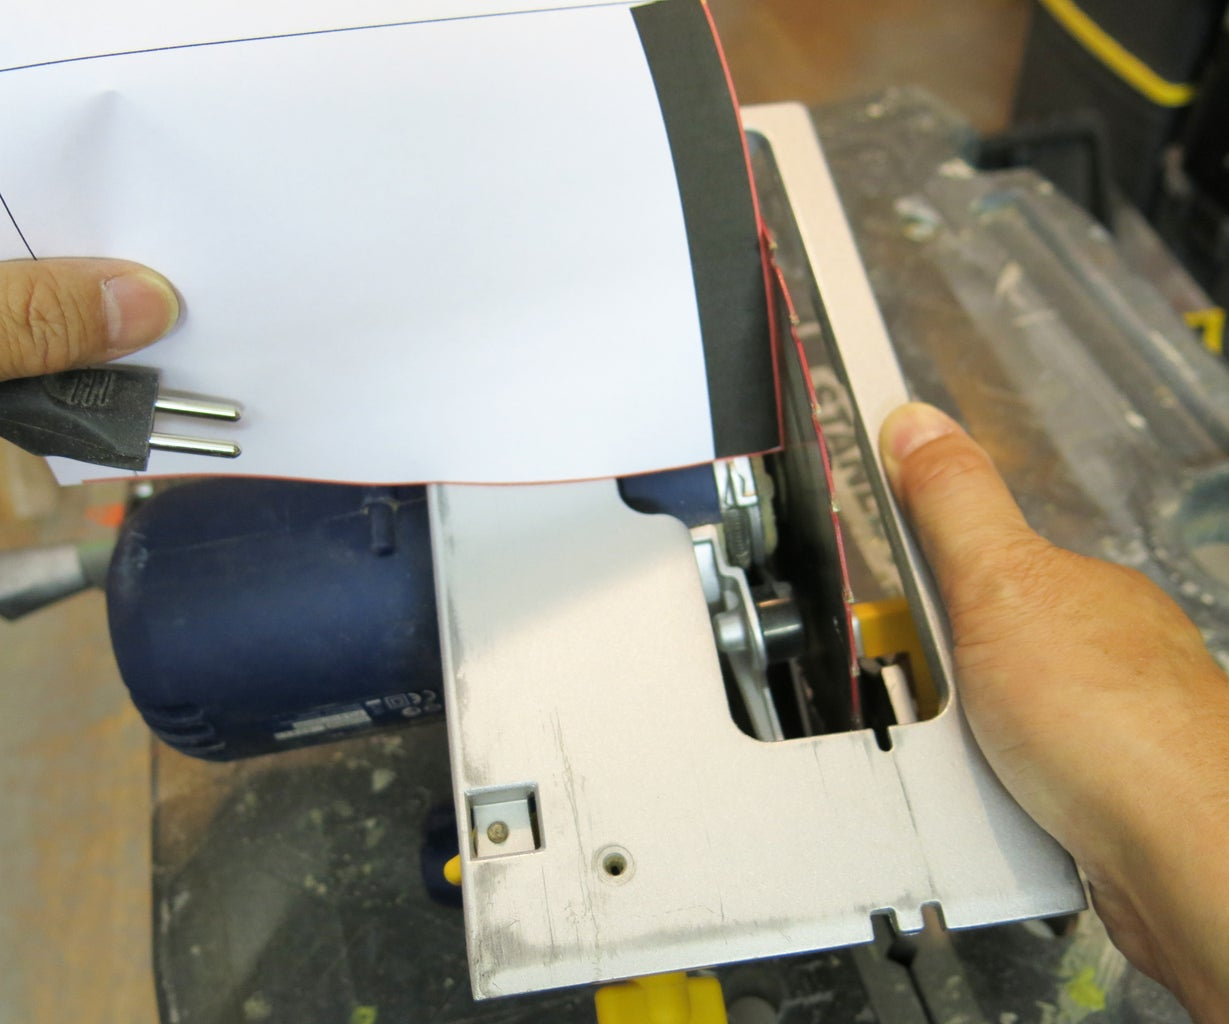 Setting the Disc Saw for Slanted Cuts